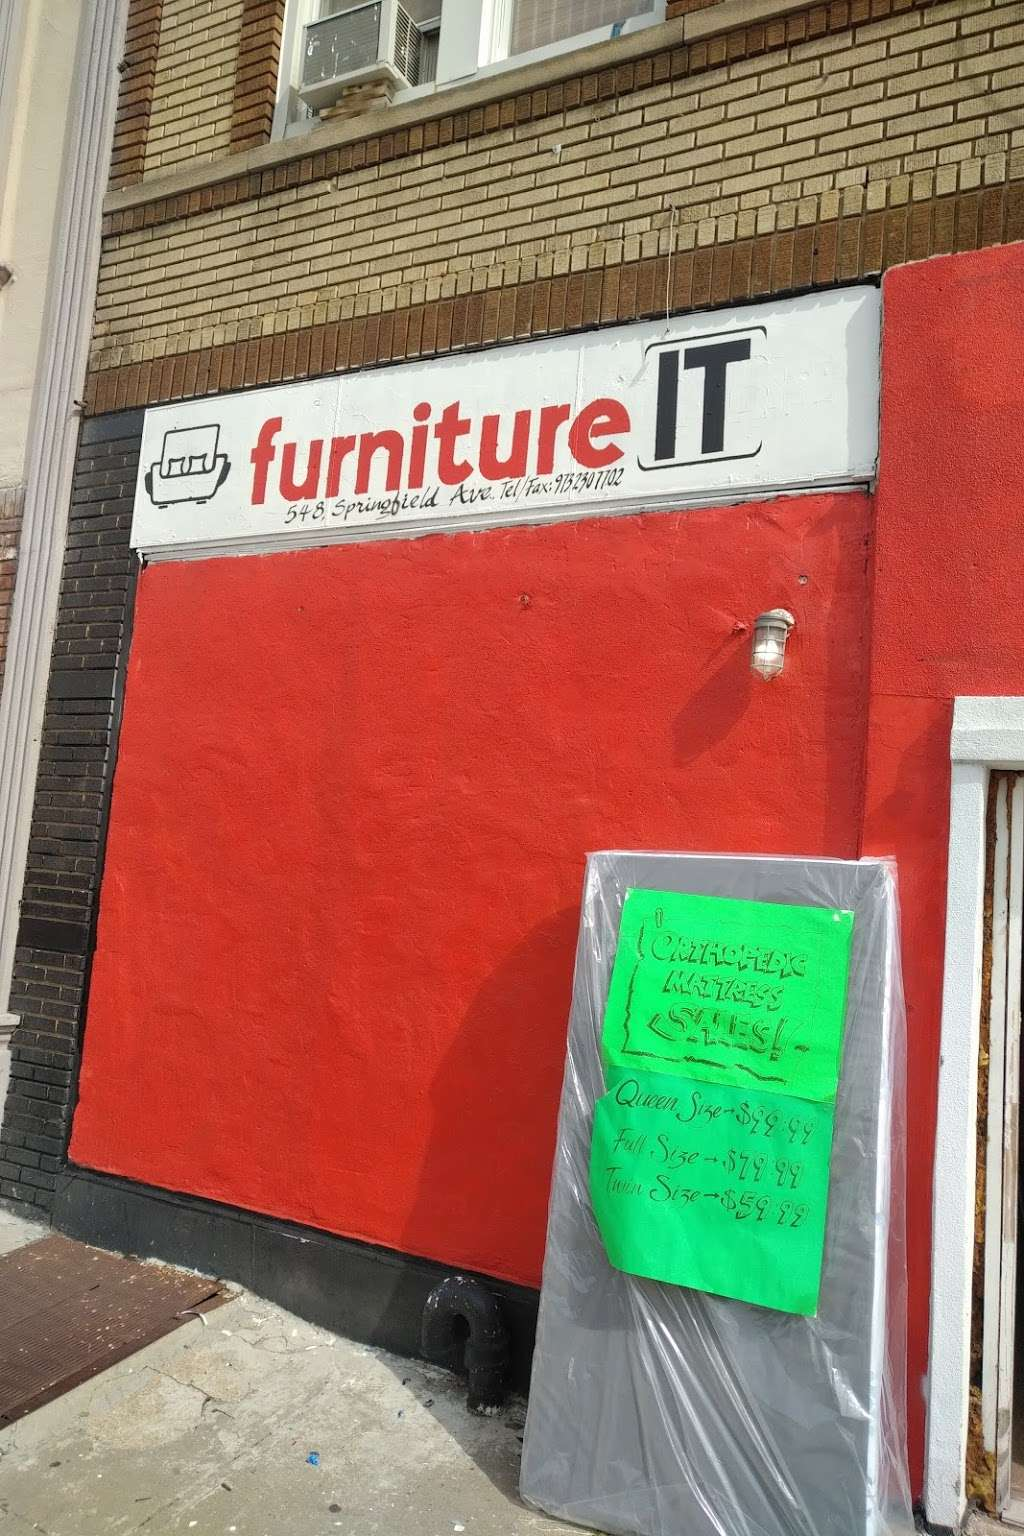 Furniture IT - furniture store  | Photo 1 of 10 | Address: 548 Springfield Ave, Newark, NJ 07103, USA | Phone: (973) 230-7702